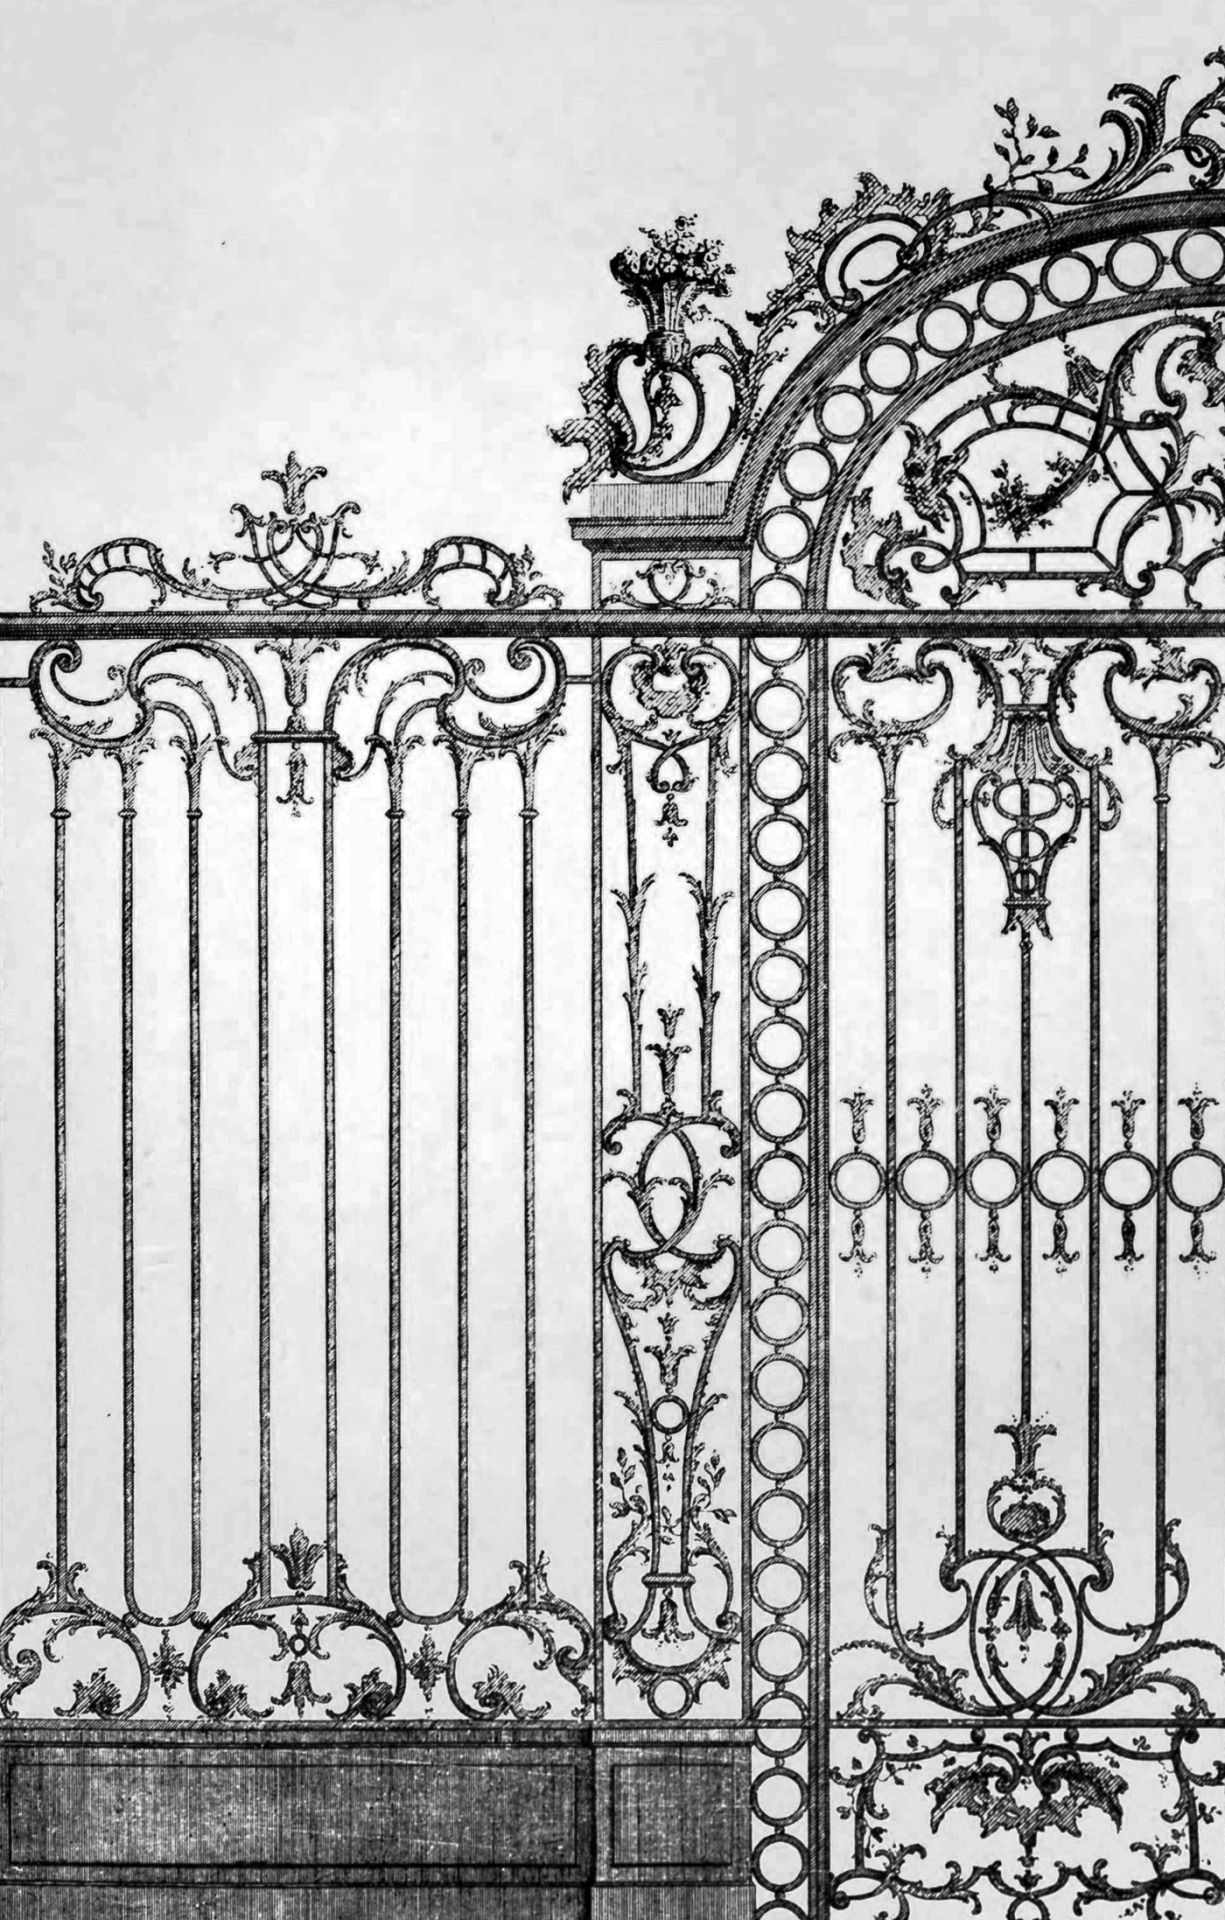 Jean-Charles Krafft - Homes and hotels in Paris (1909). [x] > Wrought iron work by François de Cuvilliés the Elder.